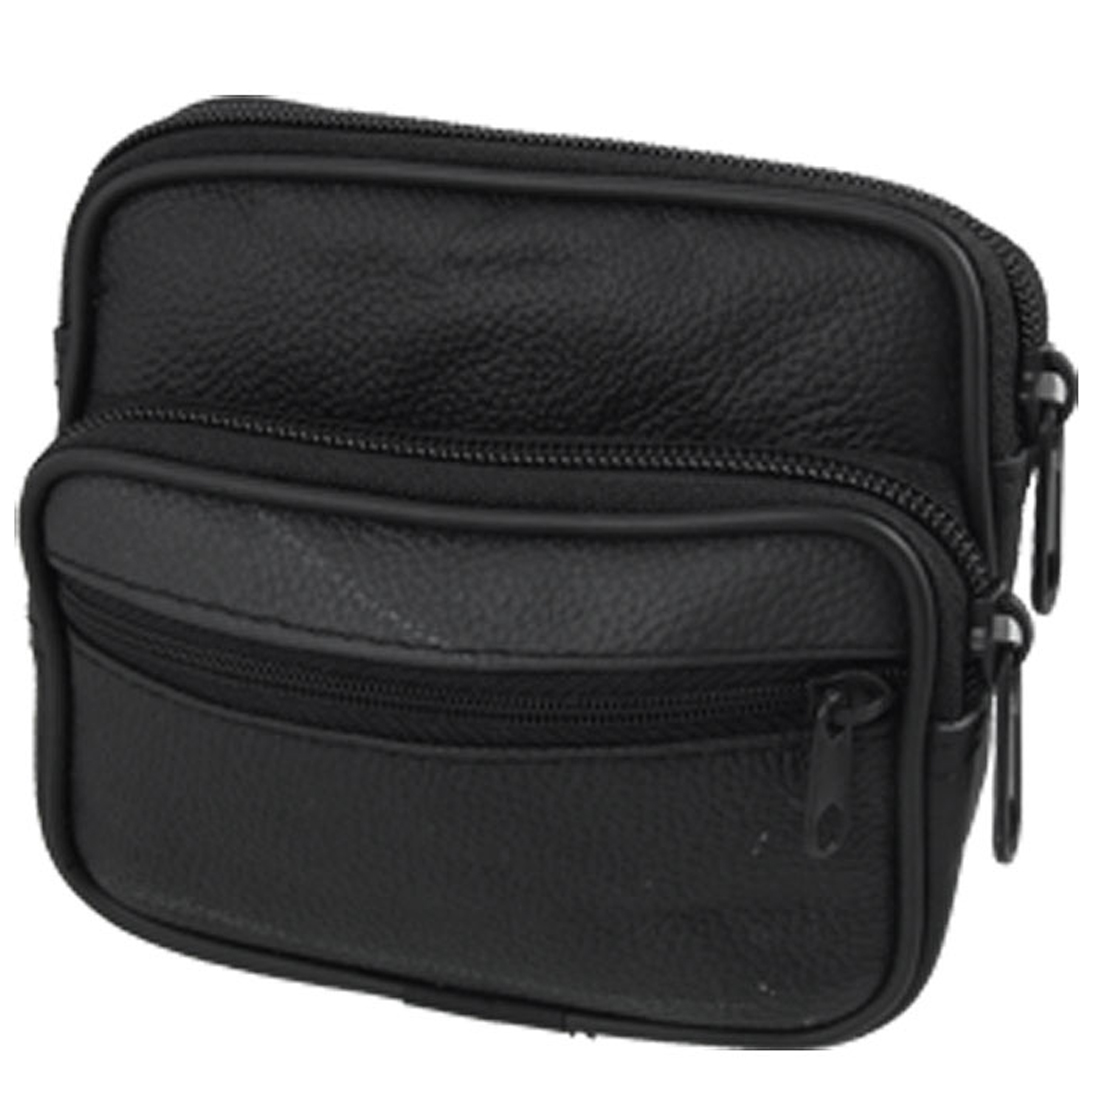 Digital Camera Cell Phone Faux Leather Waist Belt Bag Black